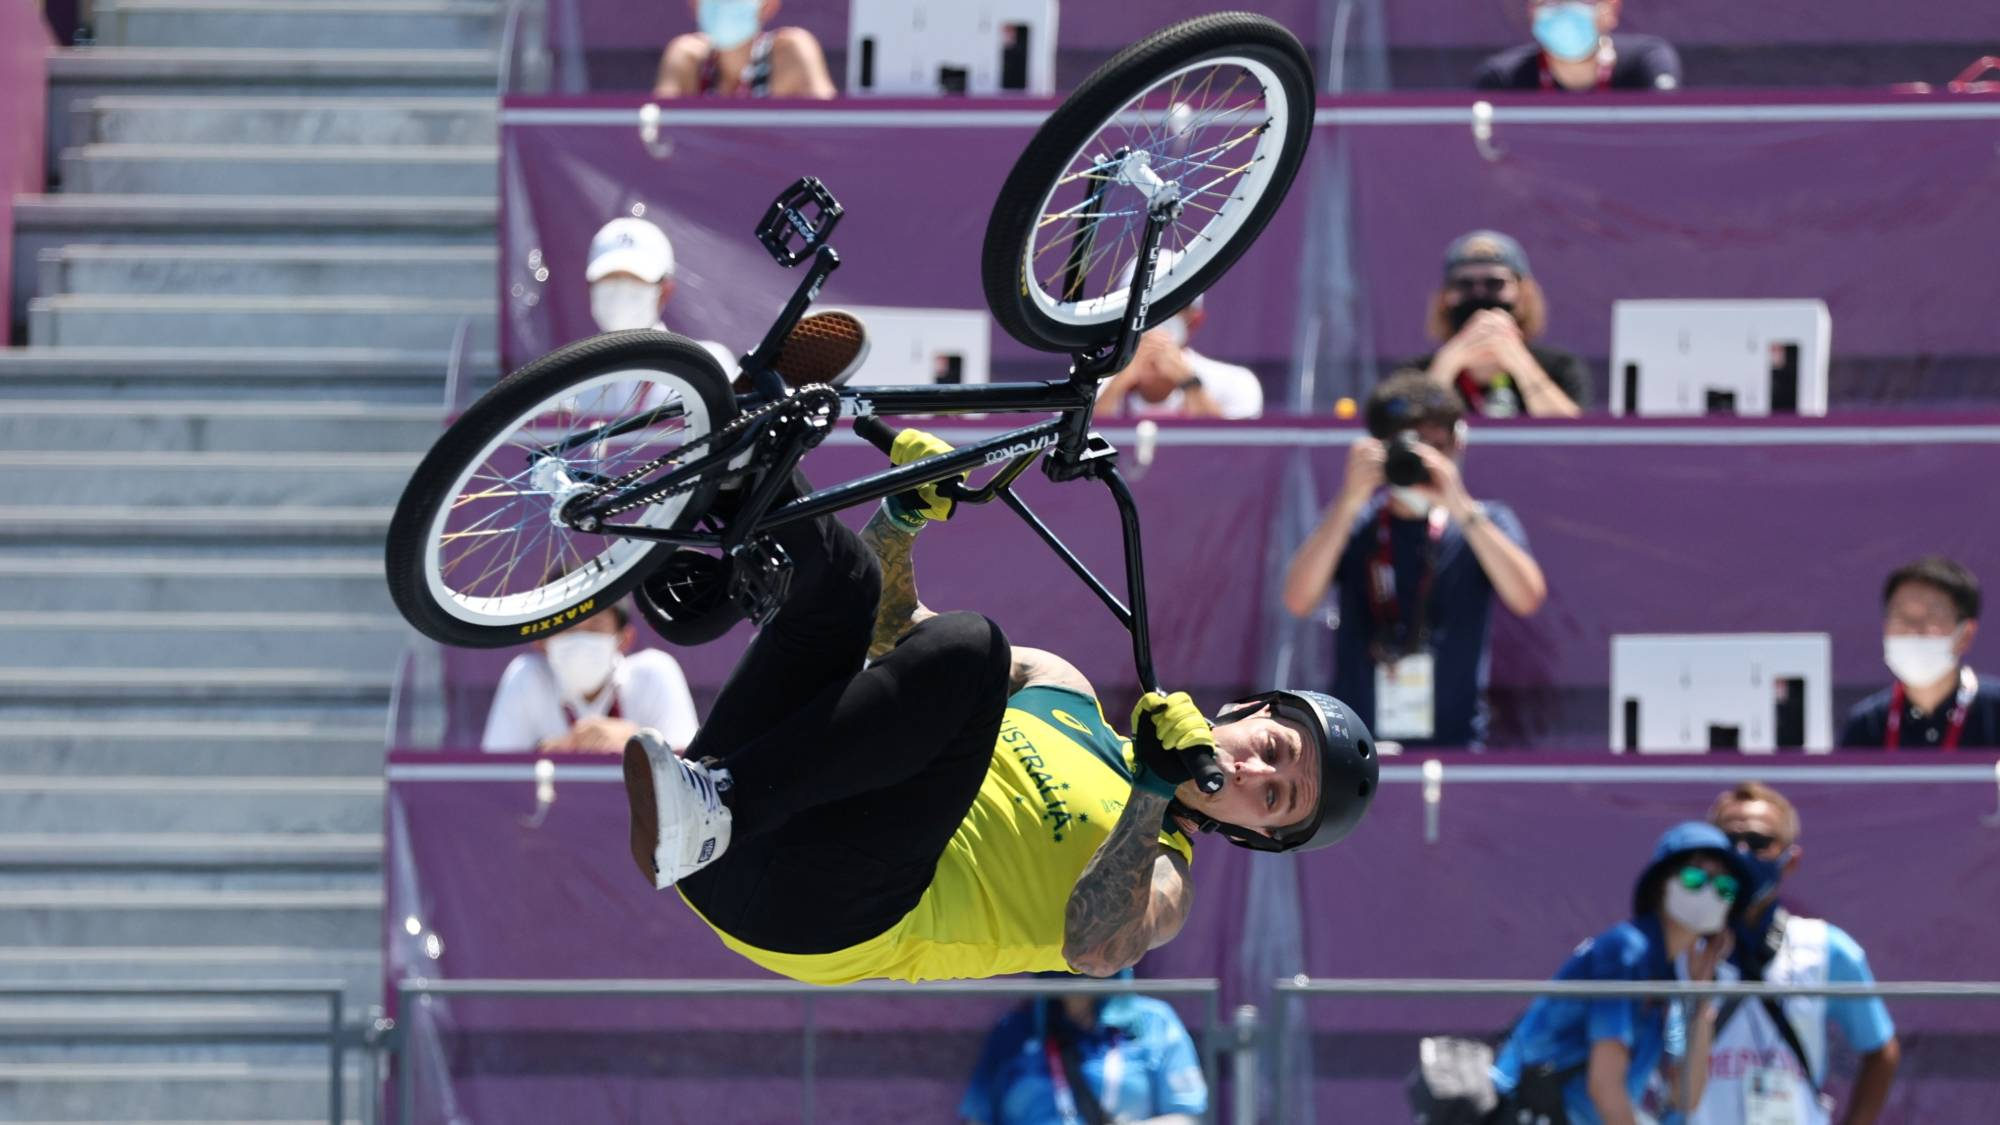 Logan Martin of Australia in action during the men's BMX freestyle final on Sunday at Ariake Urban Sports Park | REUTERS